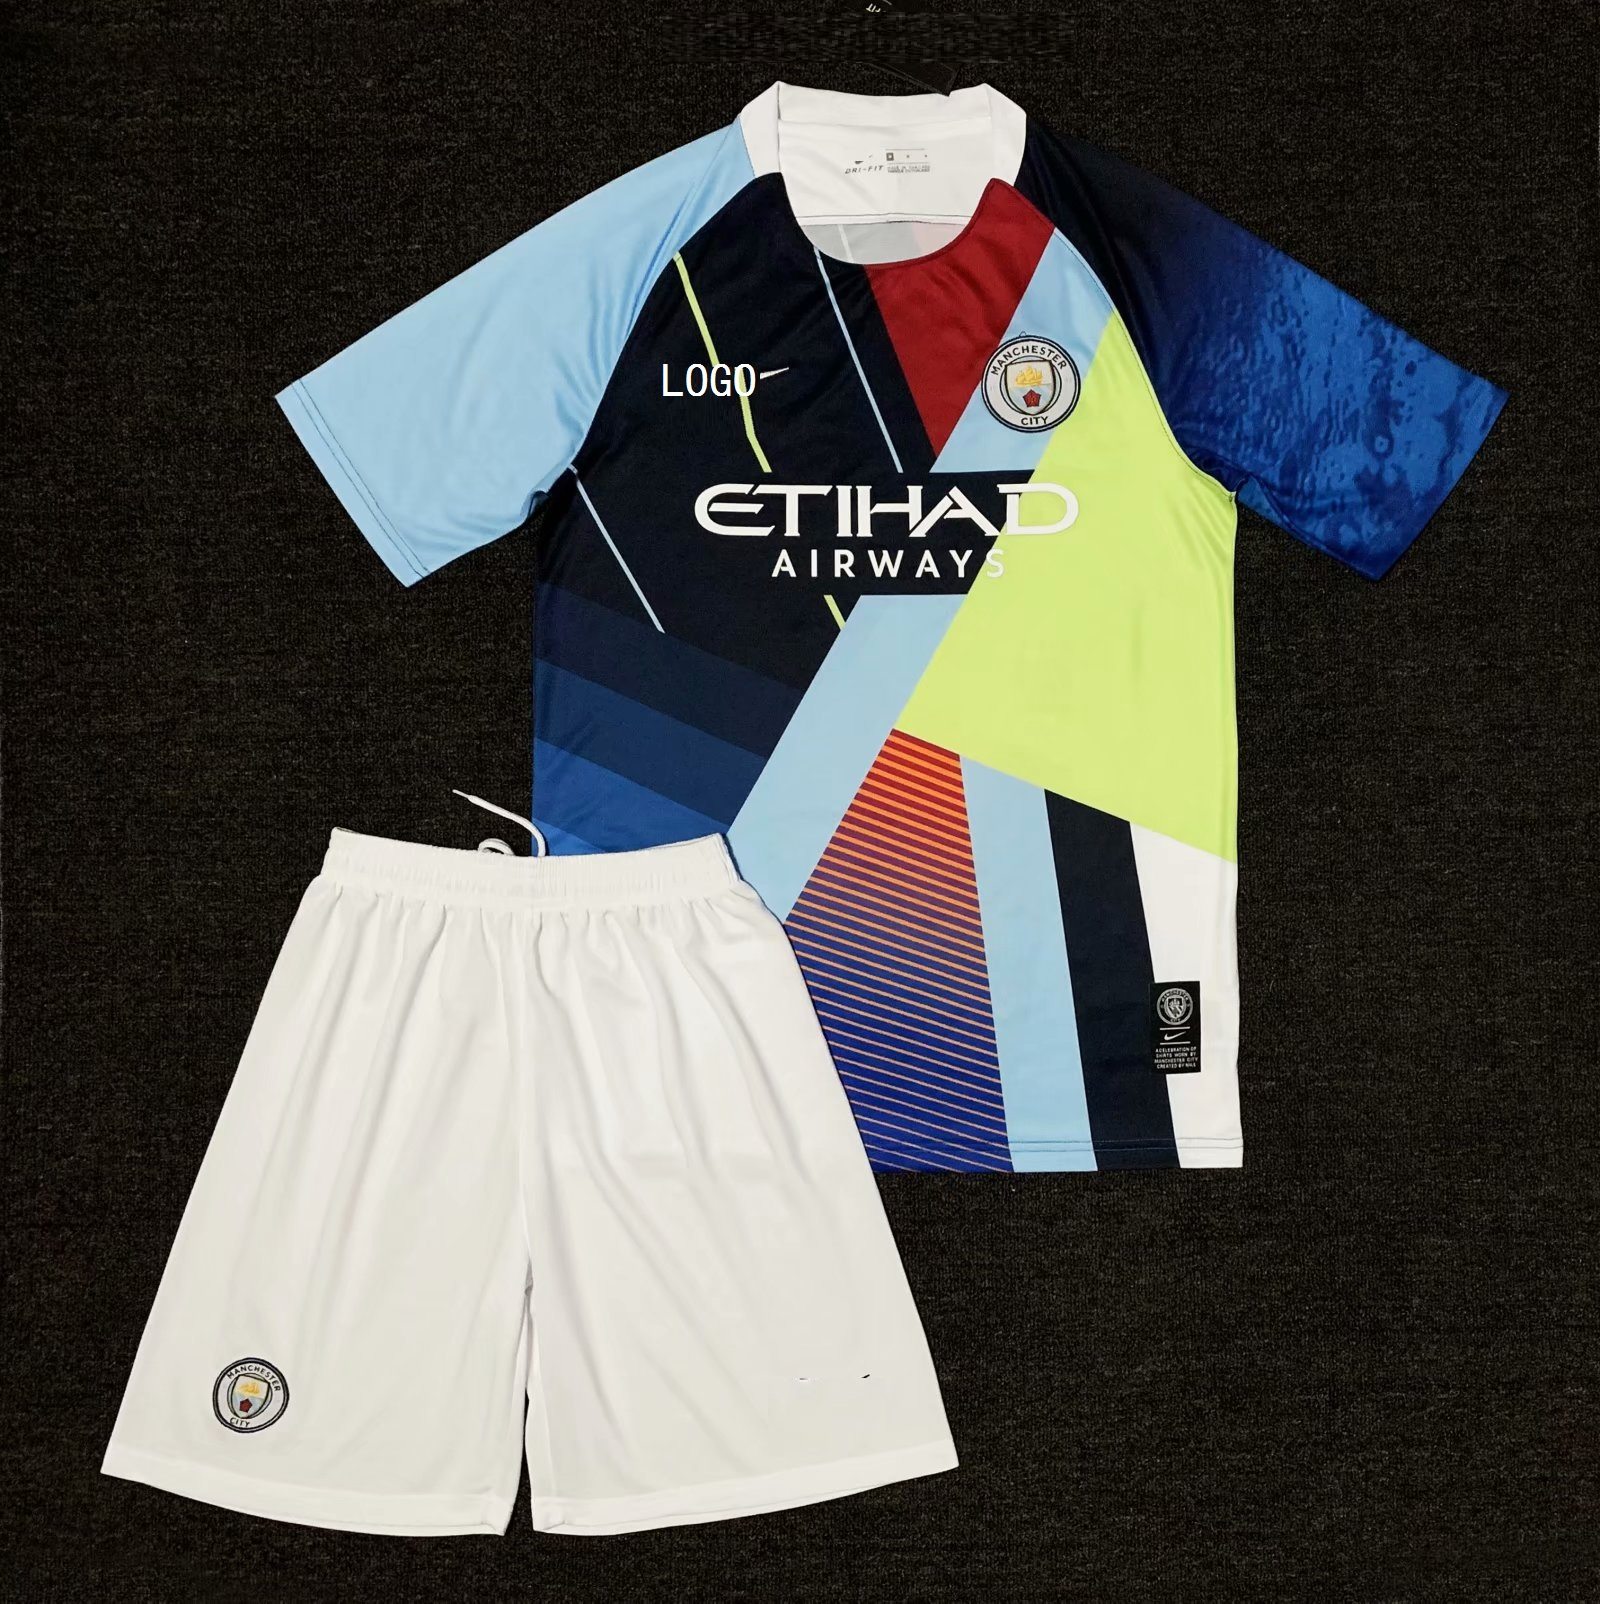 39e336dbc Manchester City Football Shirts For Sale – EDGE Engineering and ...